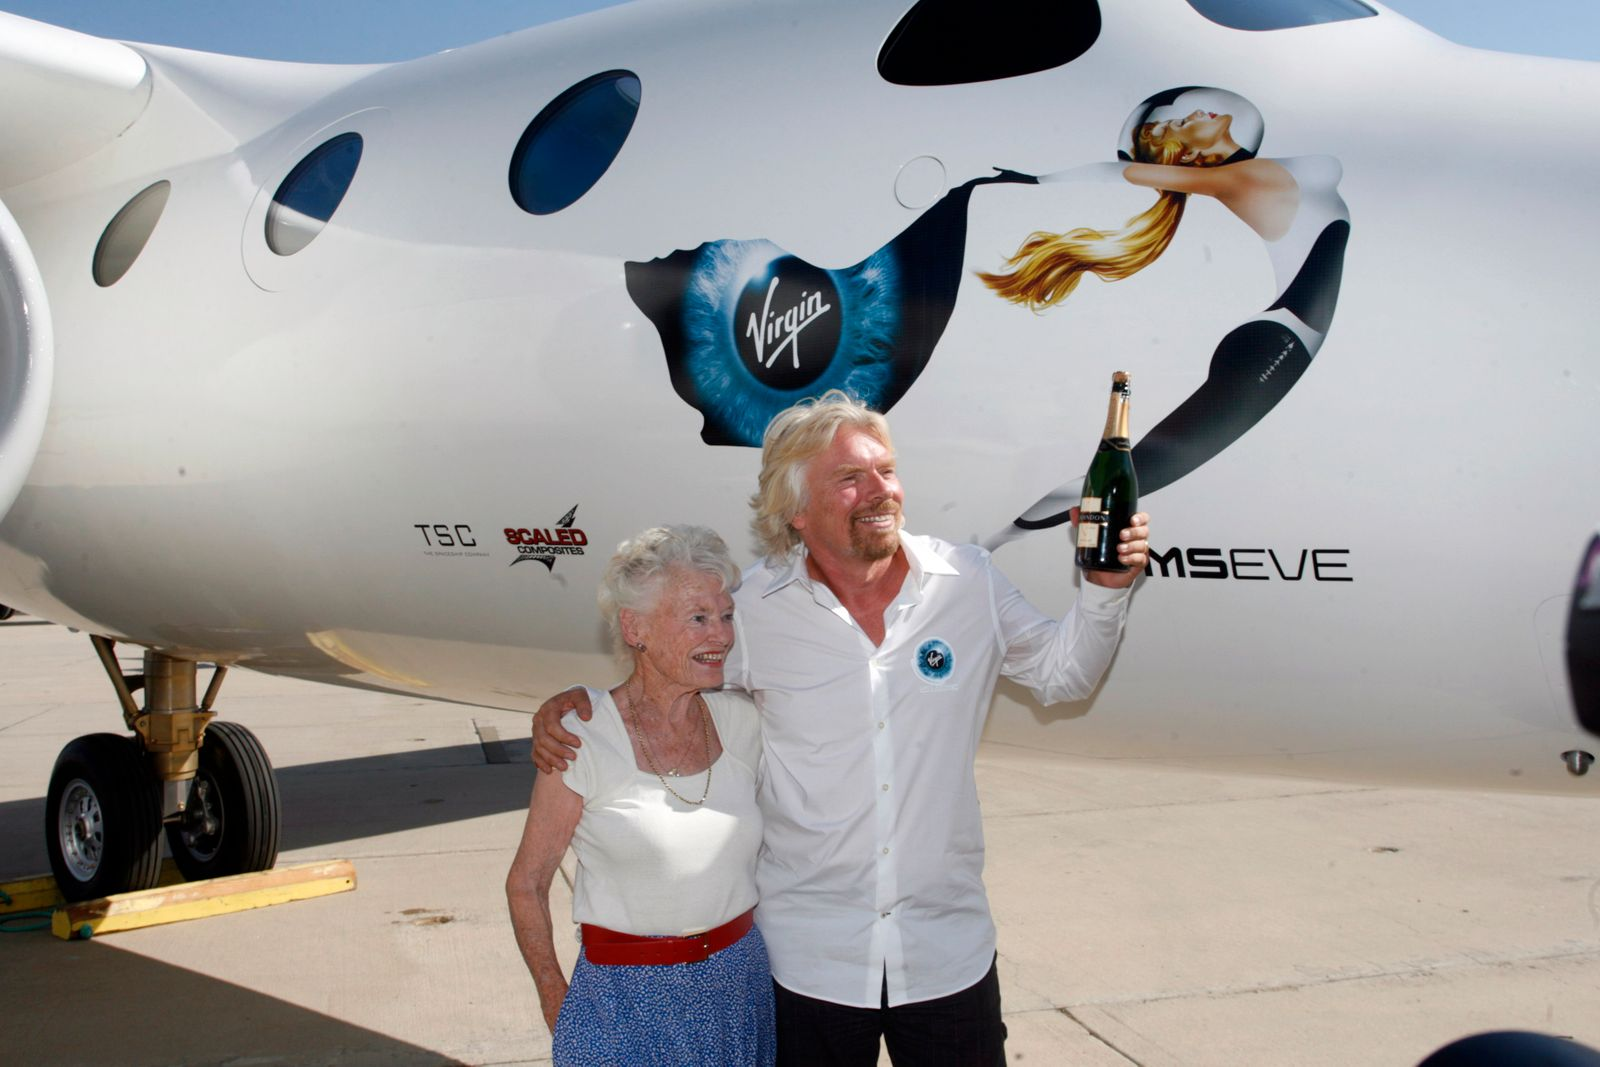 Richard Branson prepares to christen Virgin Galactic's mothership WhiteKnightTwo in honor of his mother during its public roll-out in California